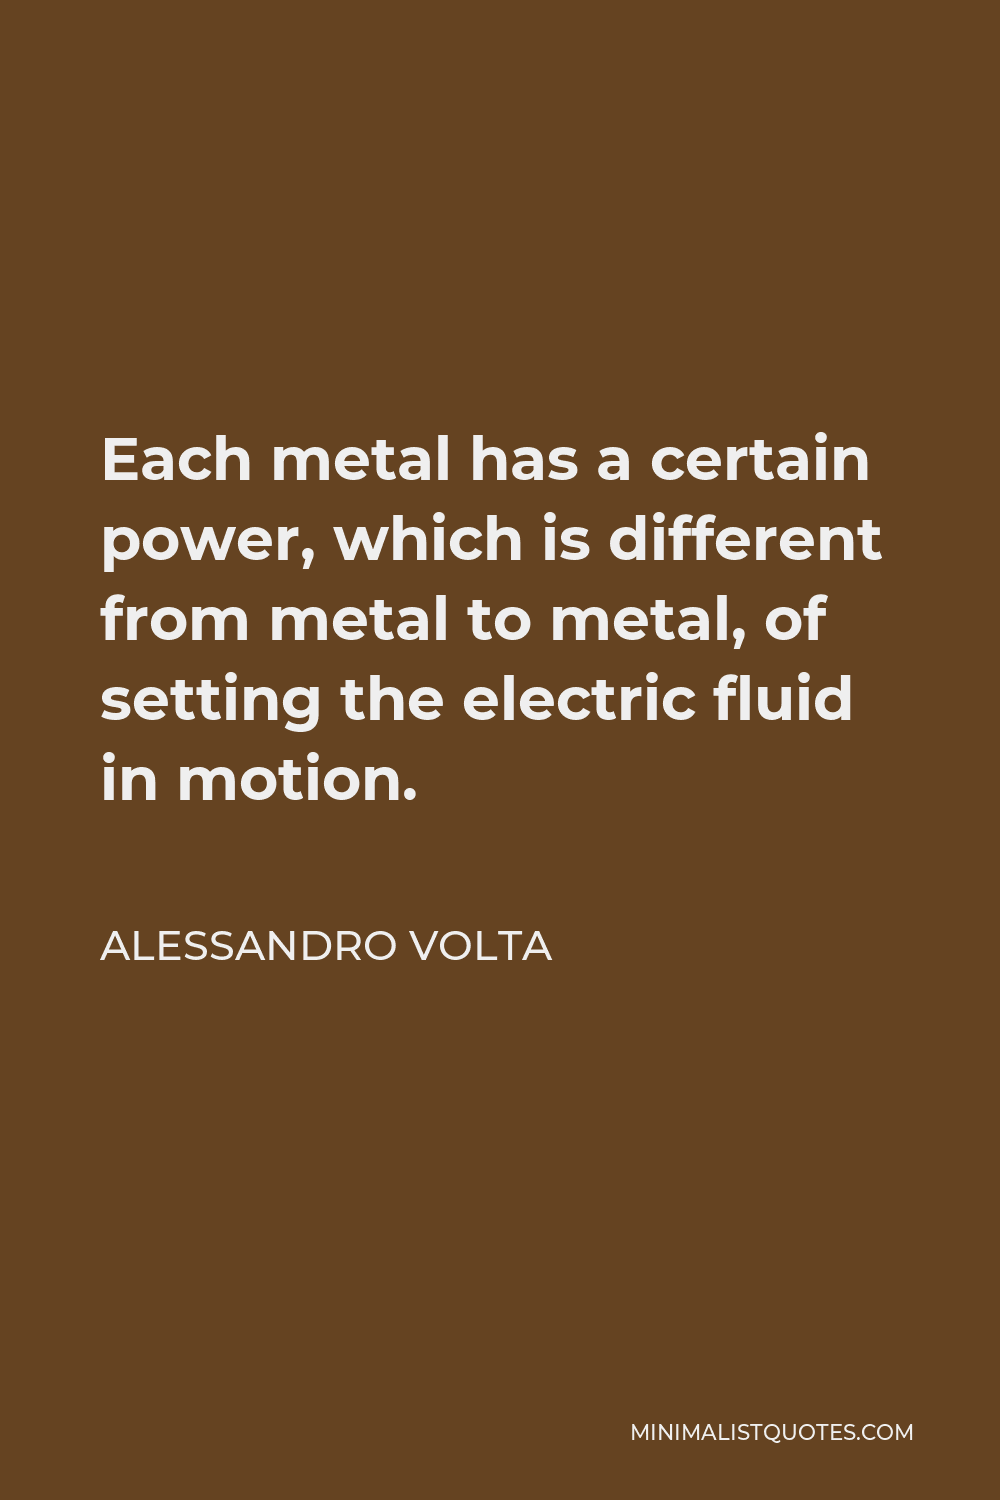 Alessandro Volta Quote - Each metal has a certain power, which is different from metal to metal, of setting the electric fluid in motion.